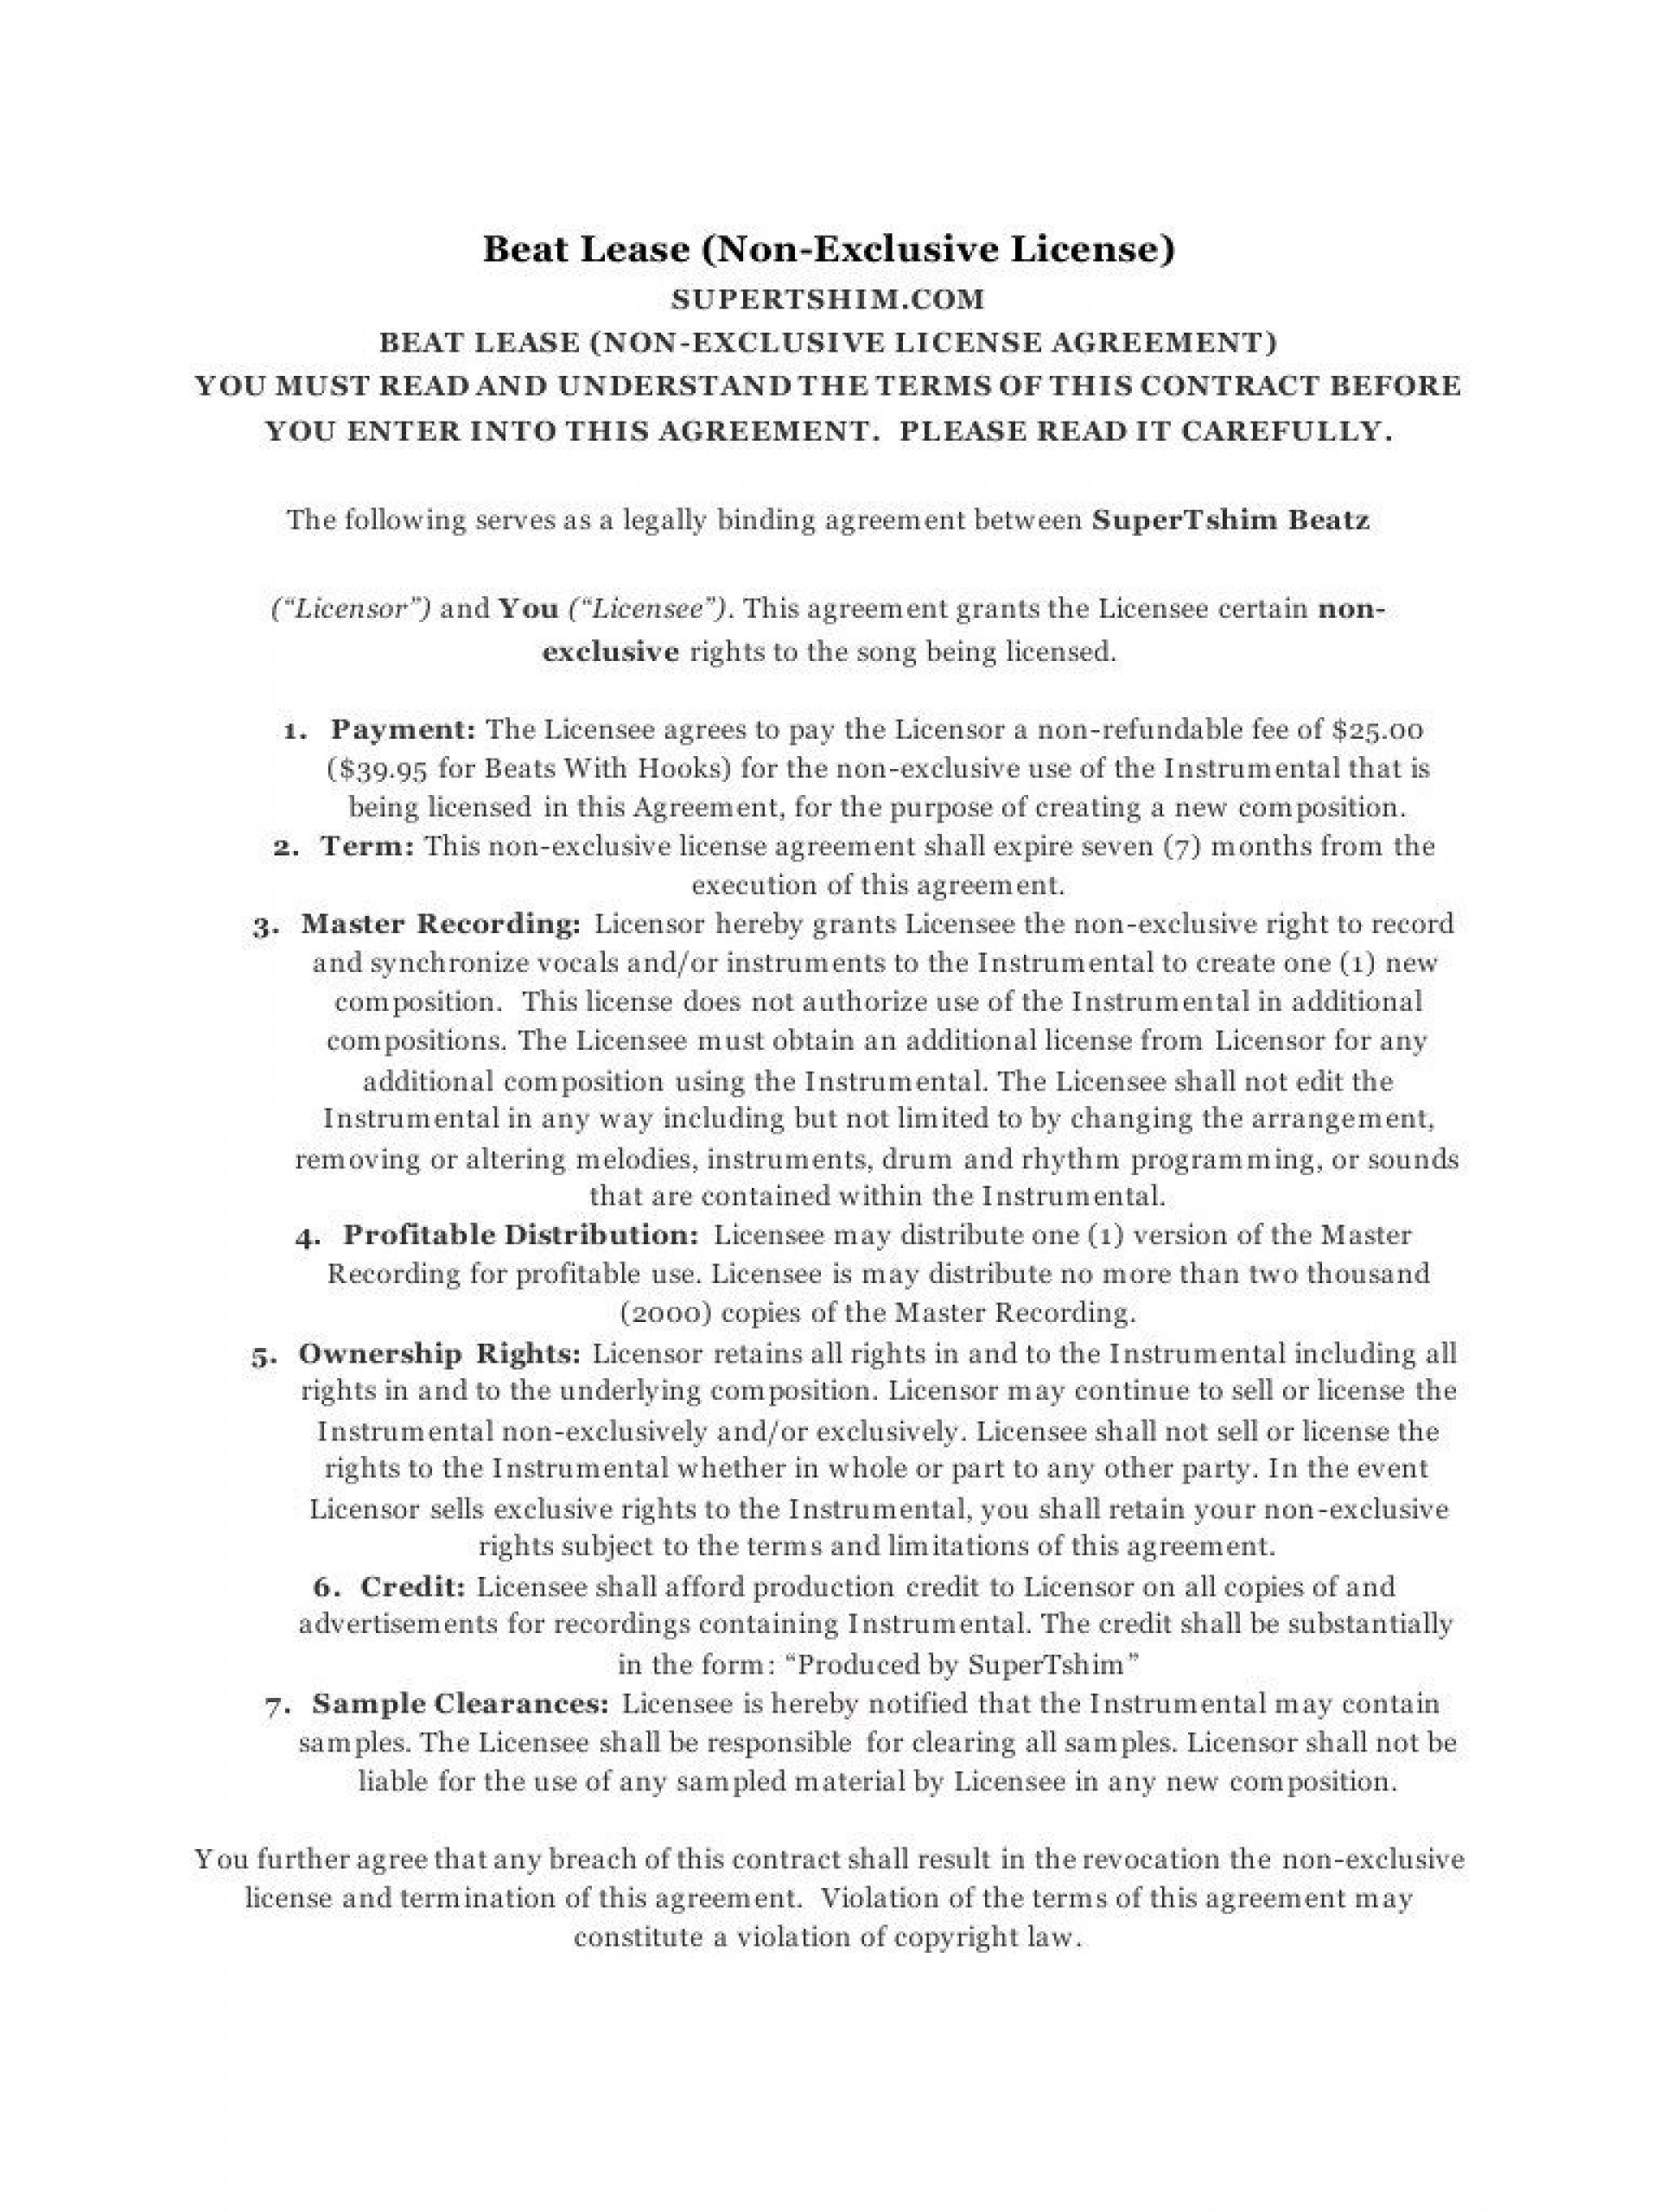 008 Beautiful Beat Lease Contract Template High Definition  Unlimited Pdf1920